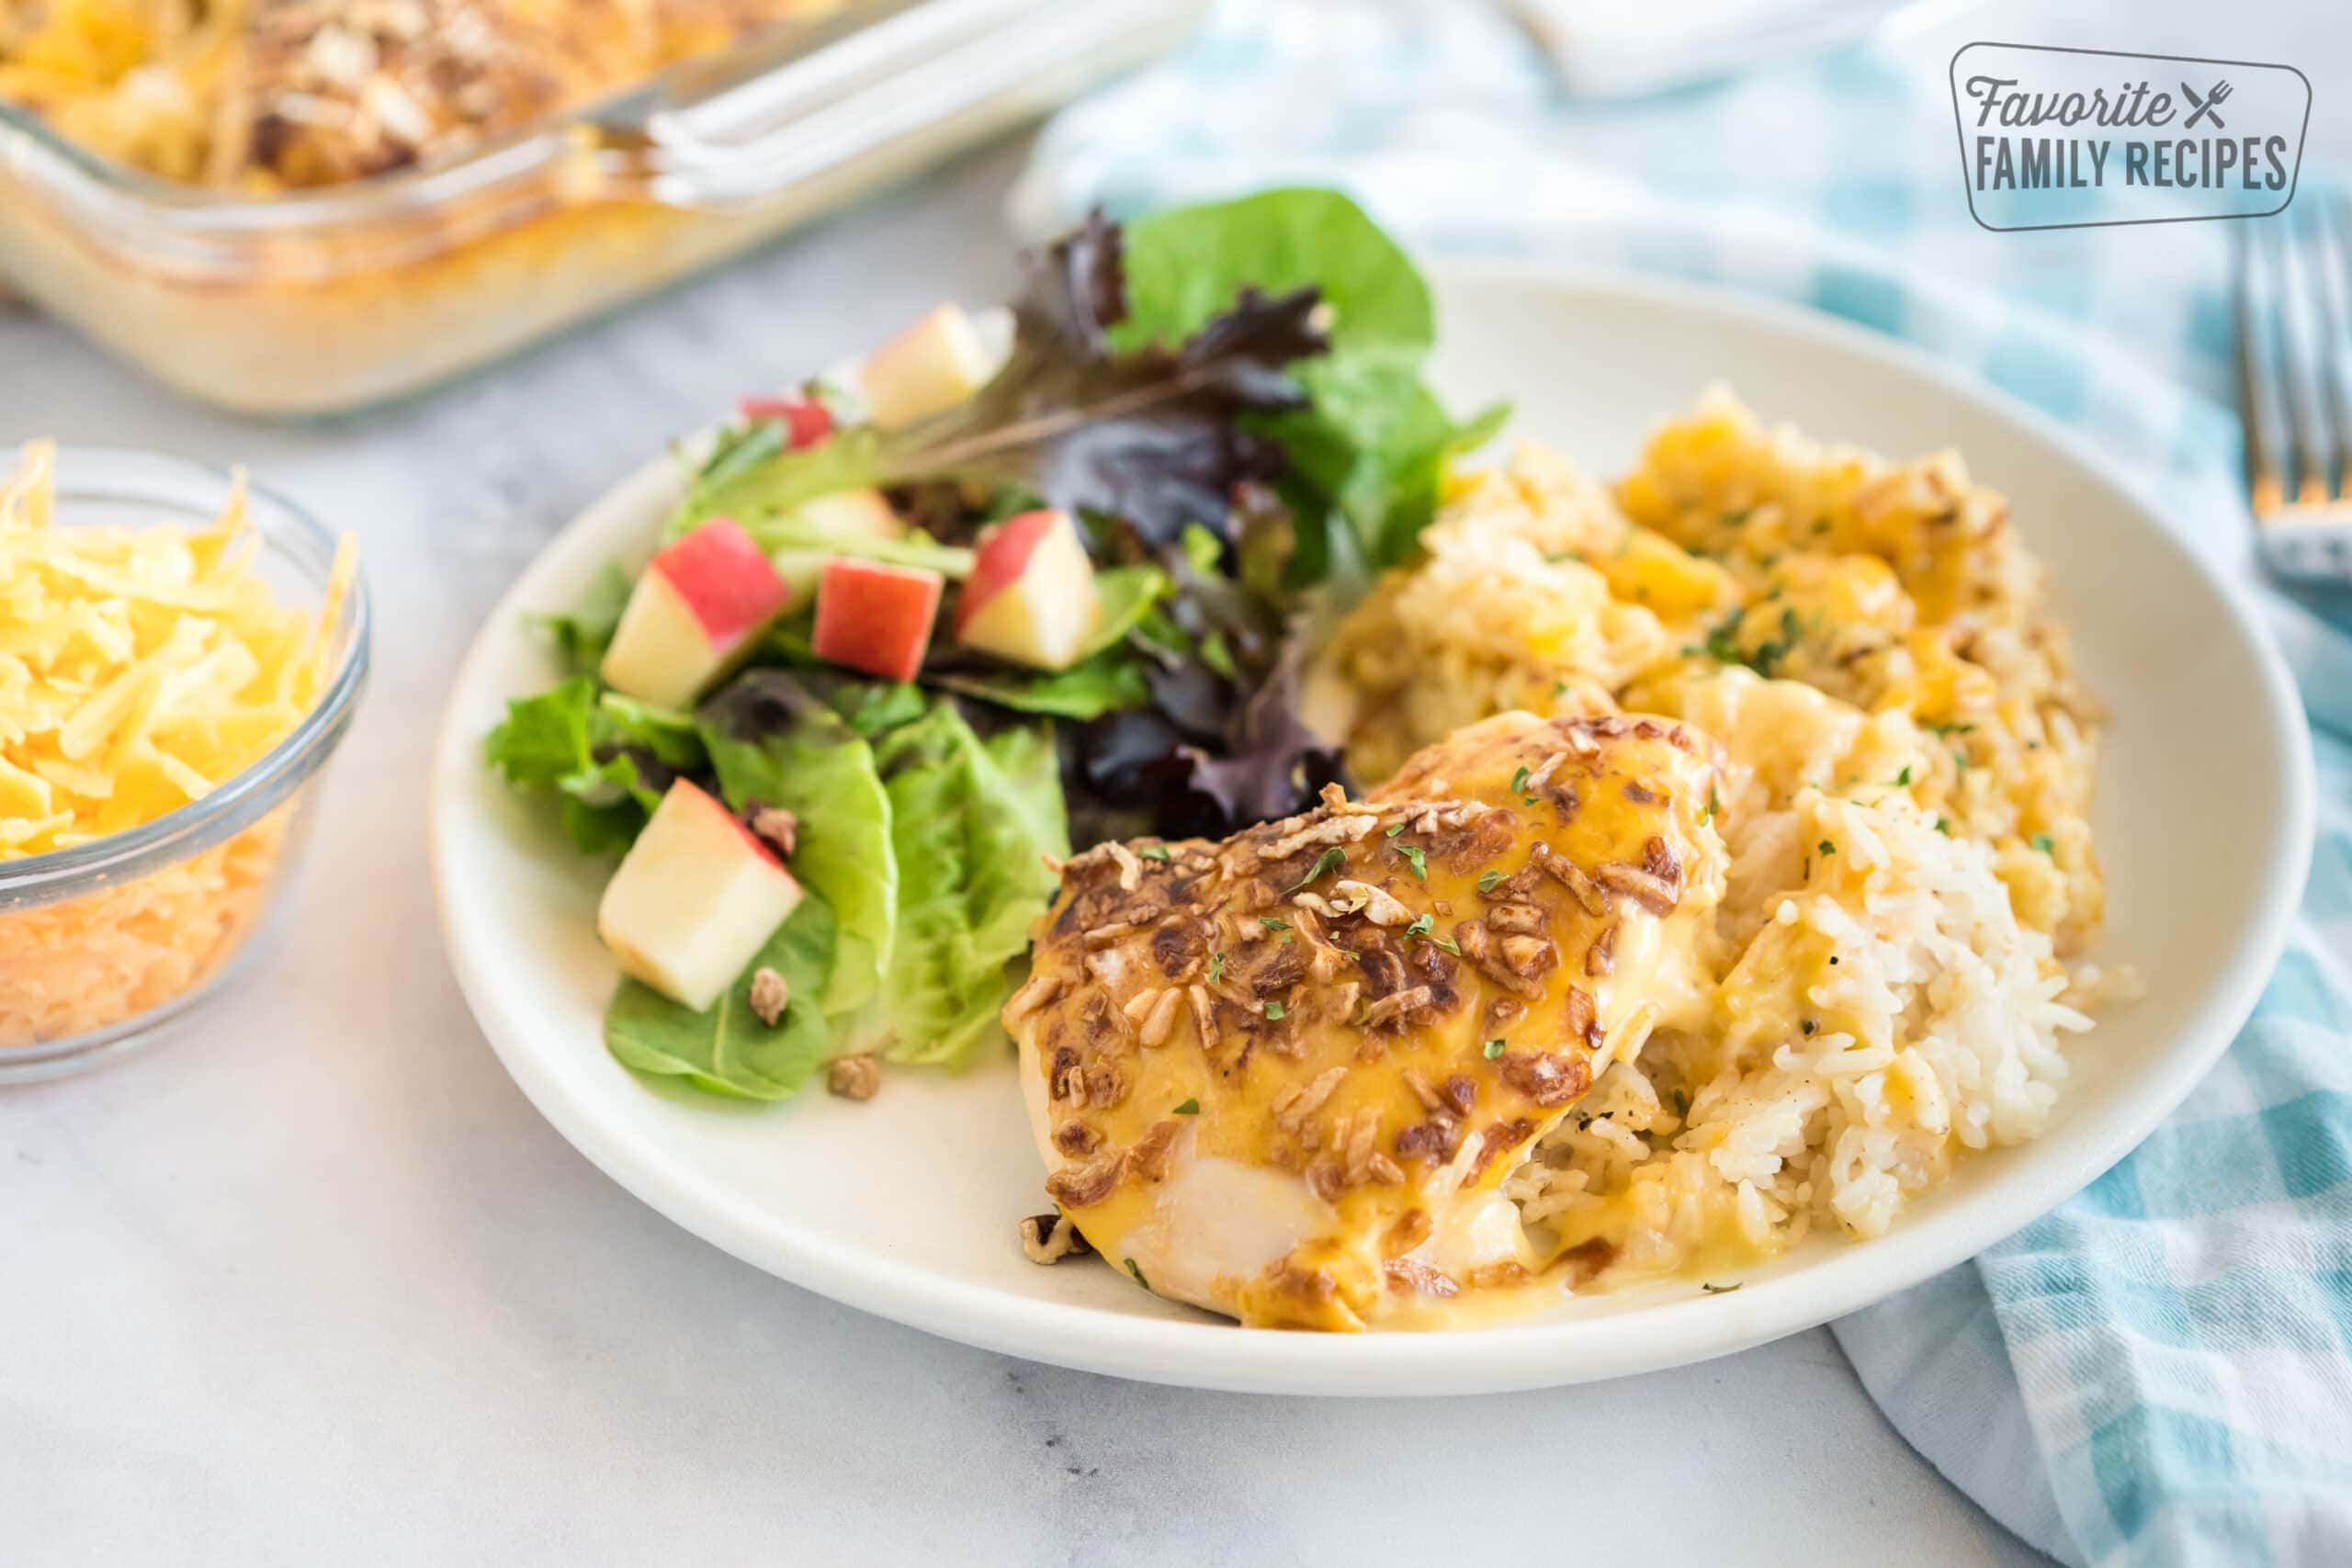 Chicken and rice casserole on a plate with salad